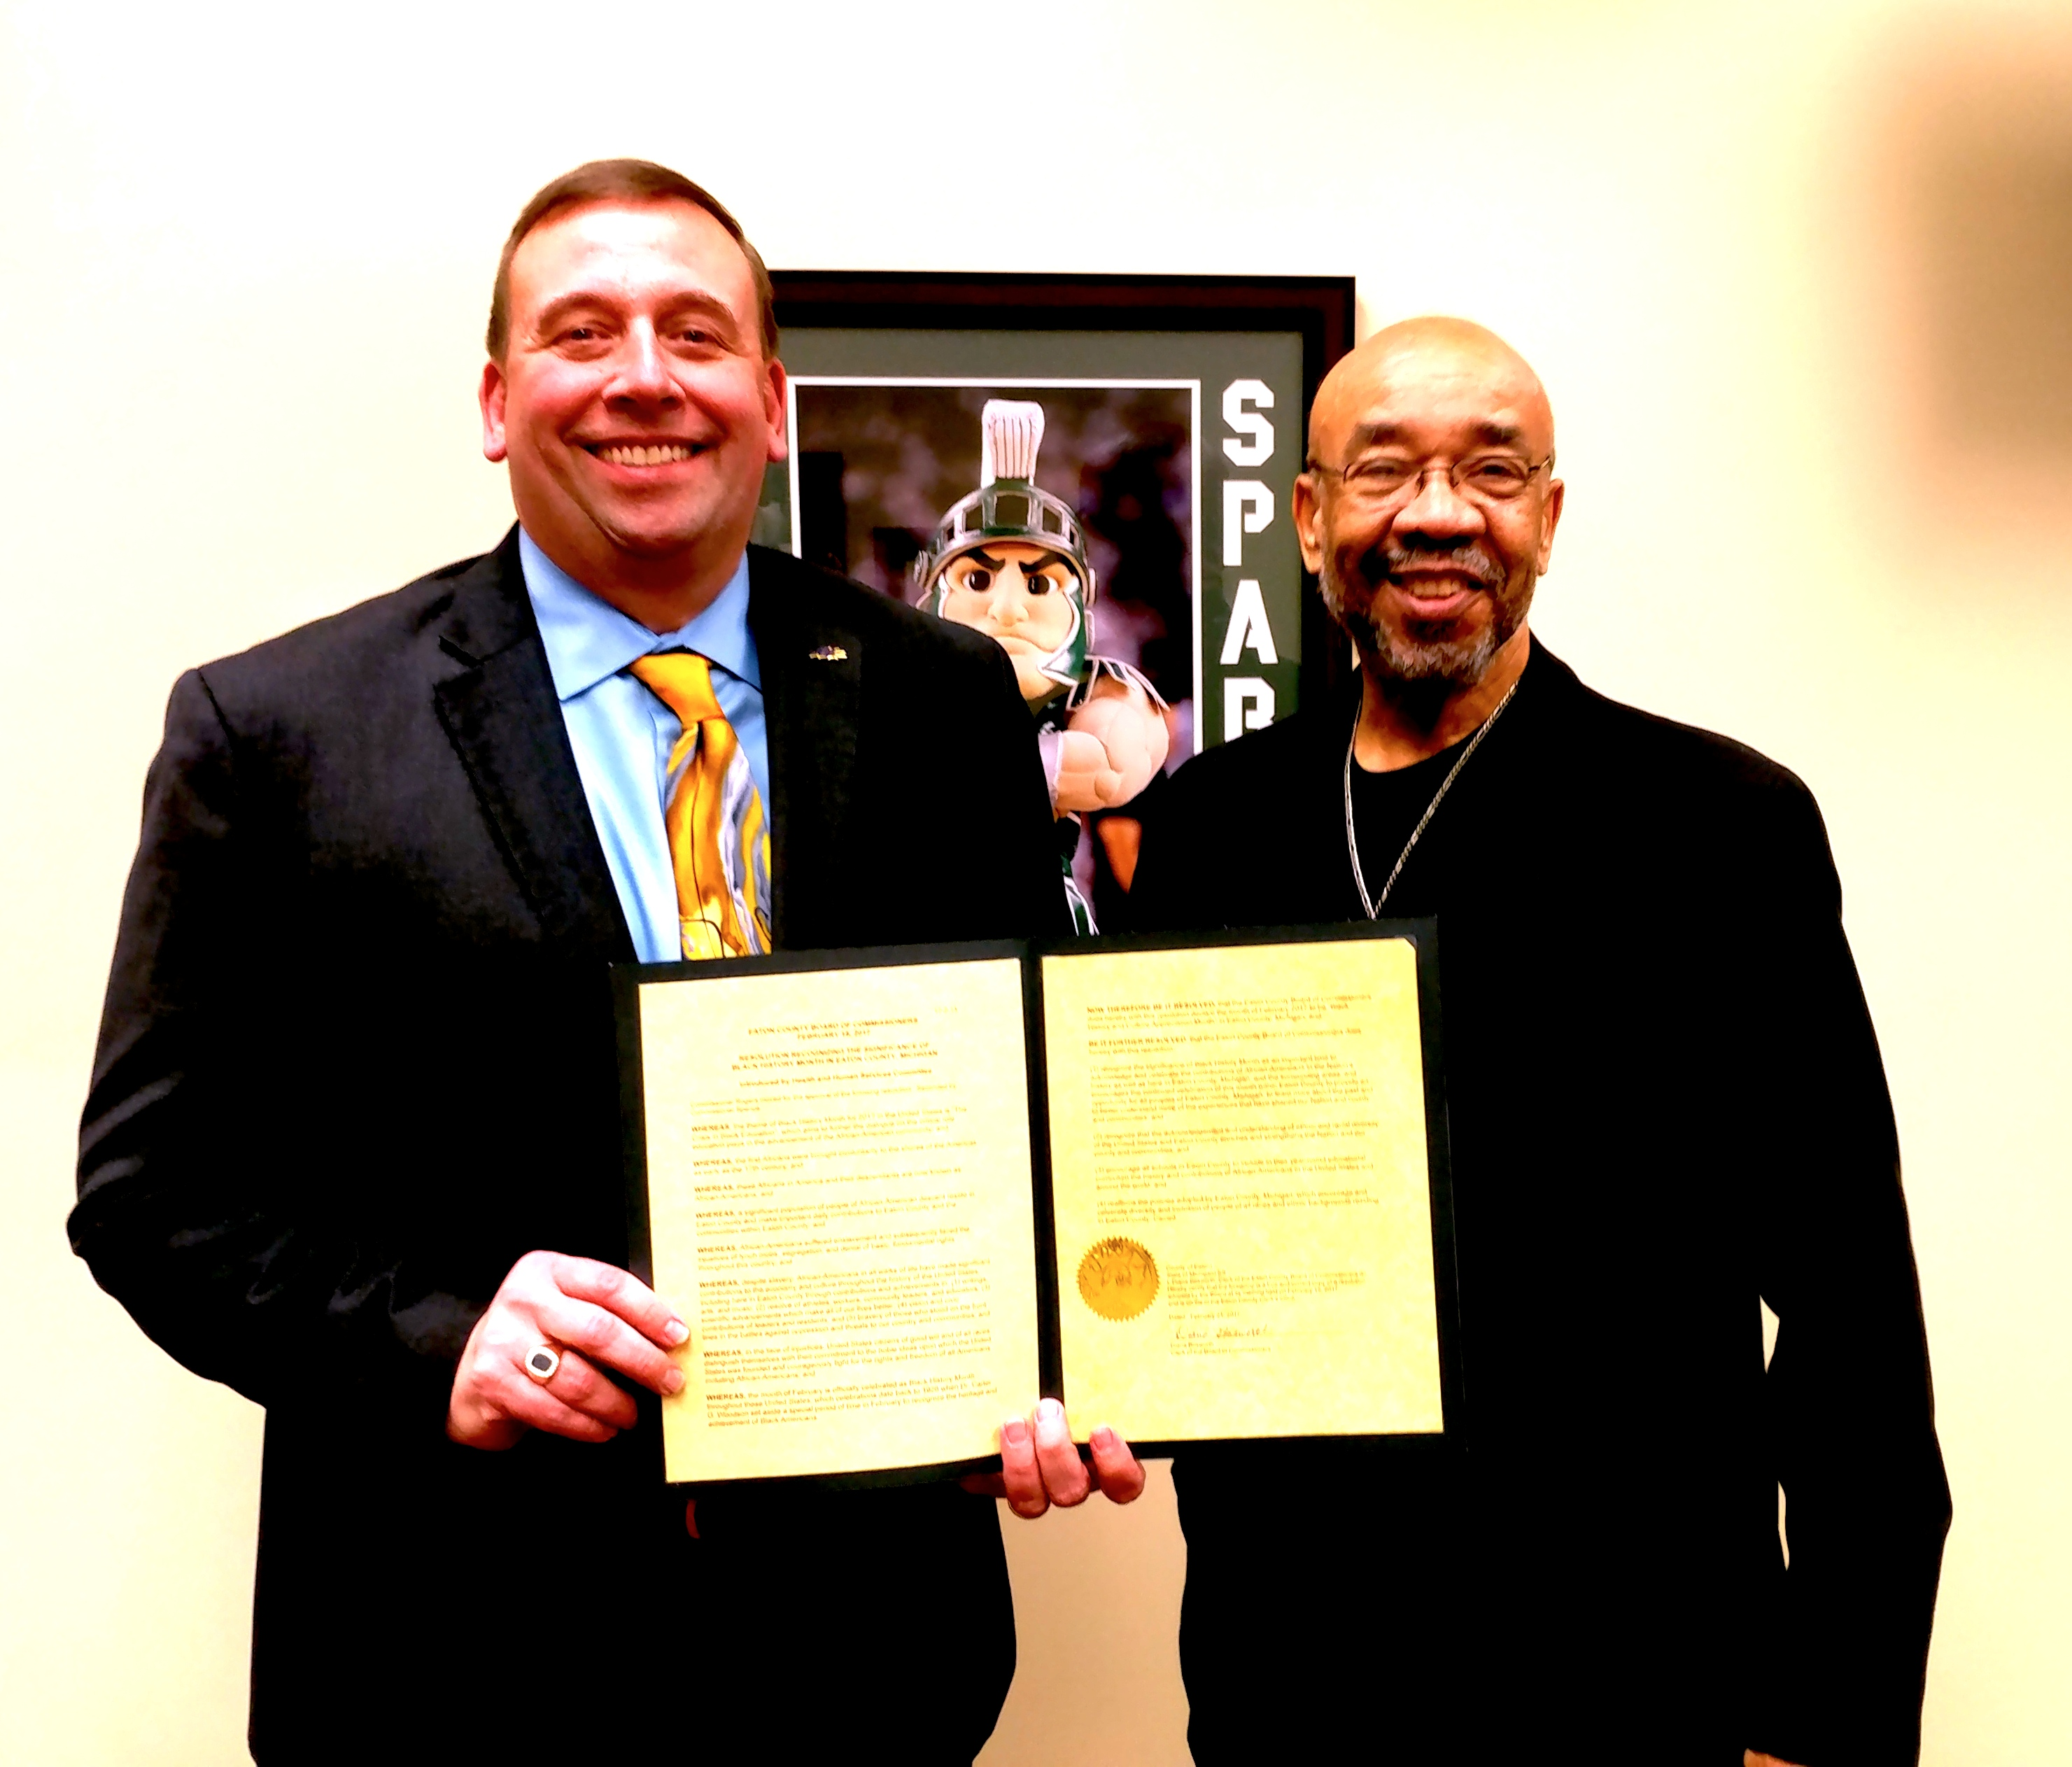 Michigan eaton county potterville - Dr Brian L Metcalf Ph D Superintendent Of The Grand Ledge School District Accepts A Copy Of The Resolution From The Eaton County Board Of